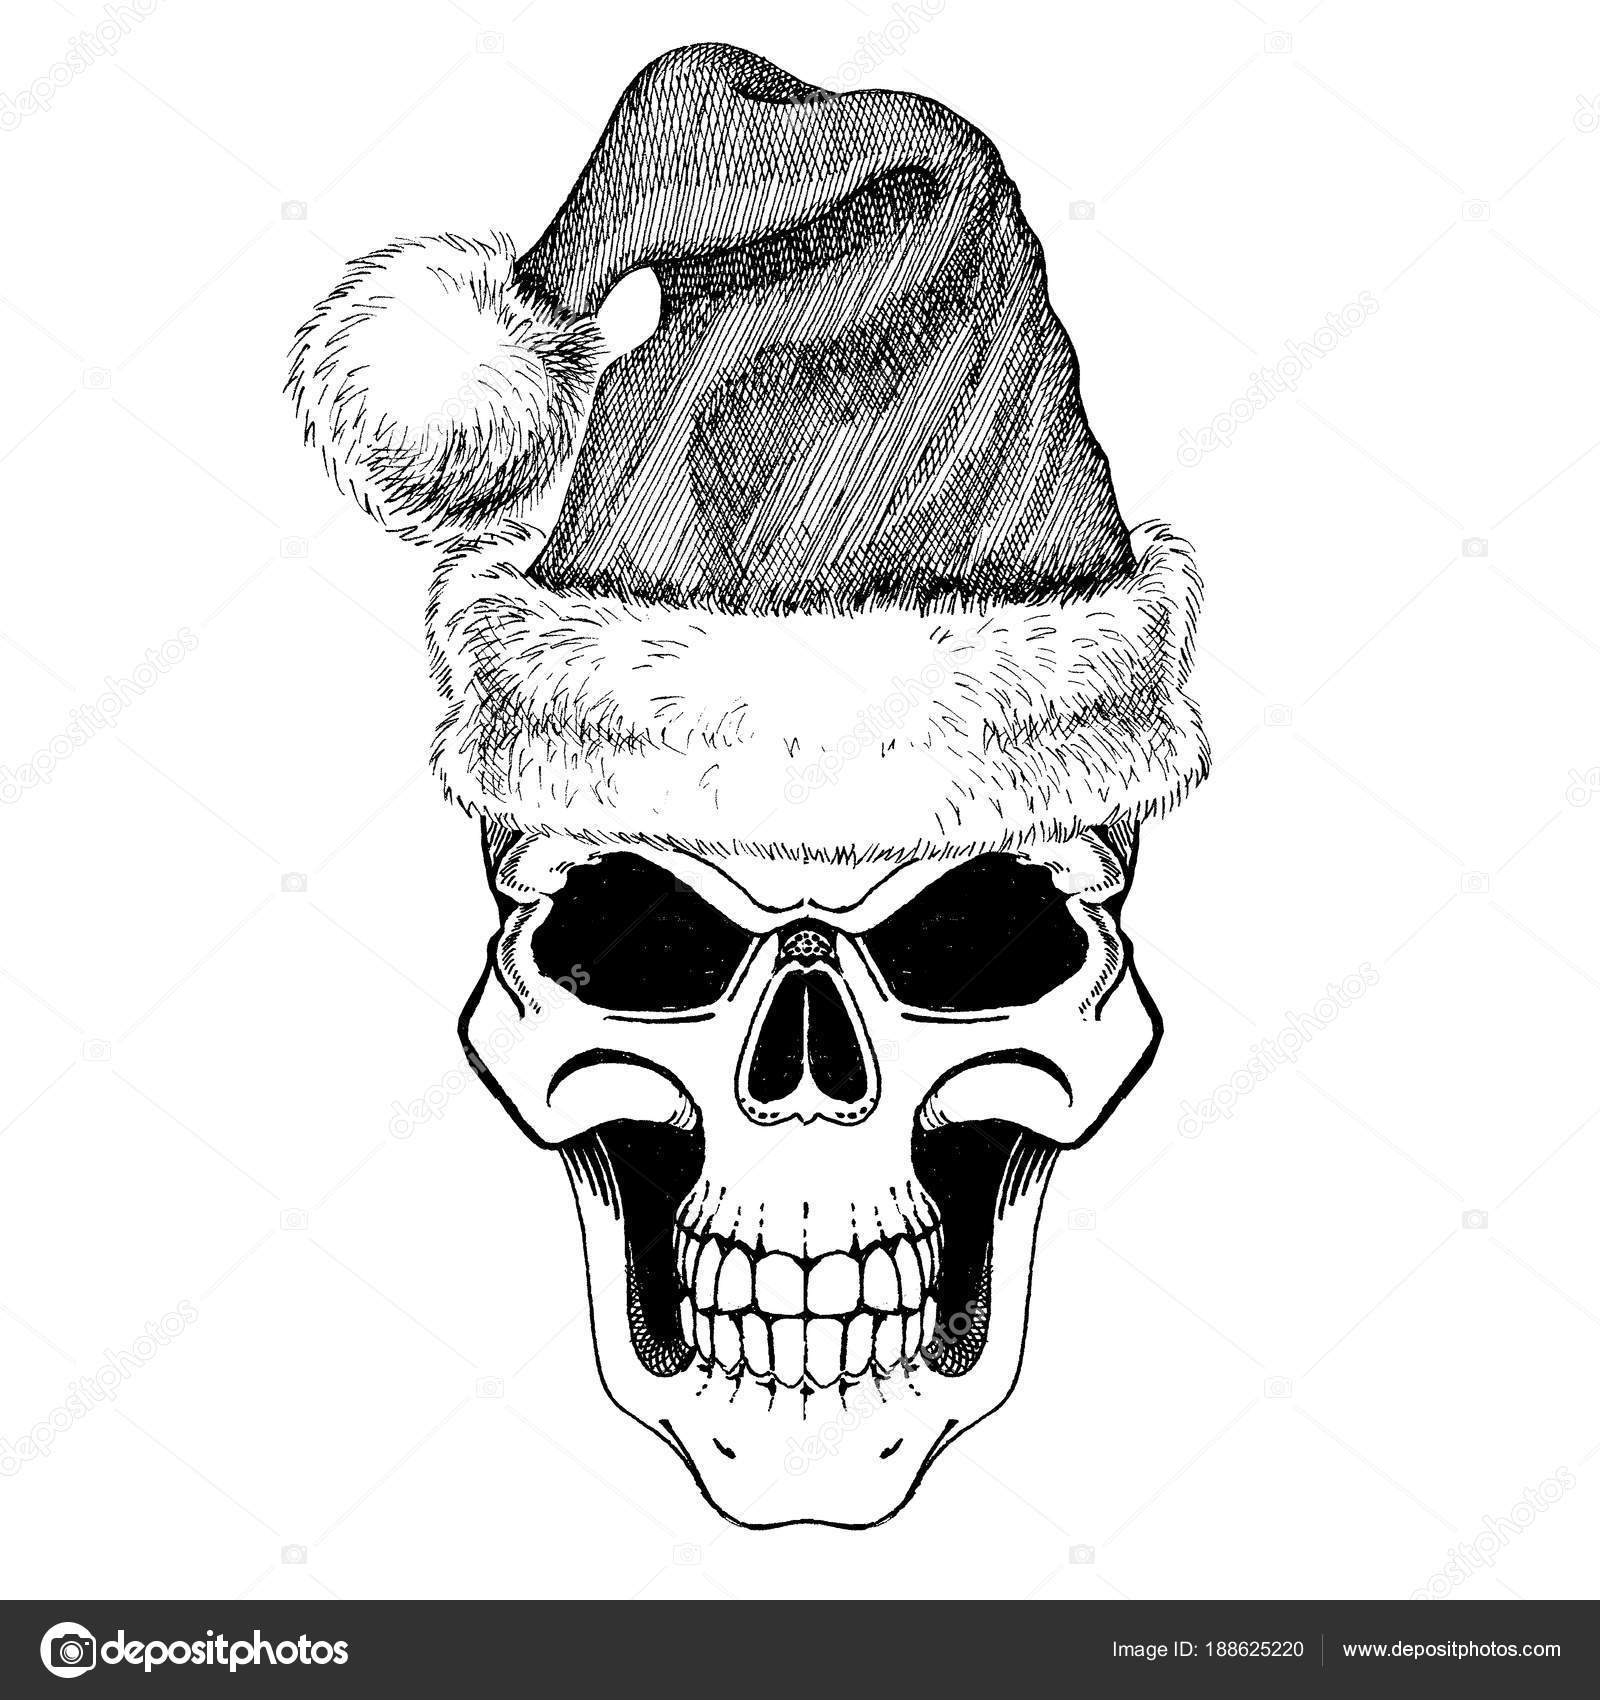 Heavy Metal Christmas.Ihotos Heavy Metal Christmas The Skull Of Santa Claus